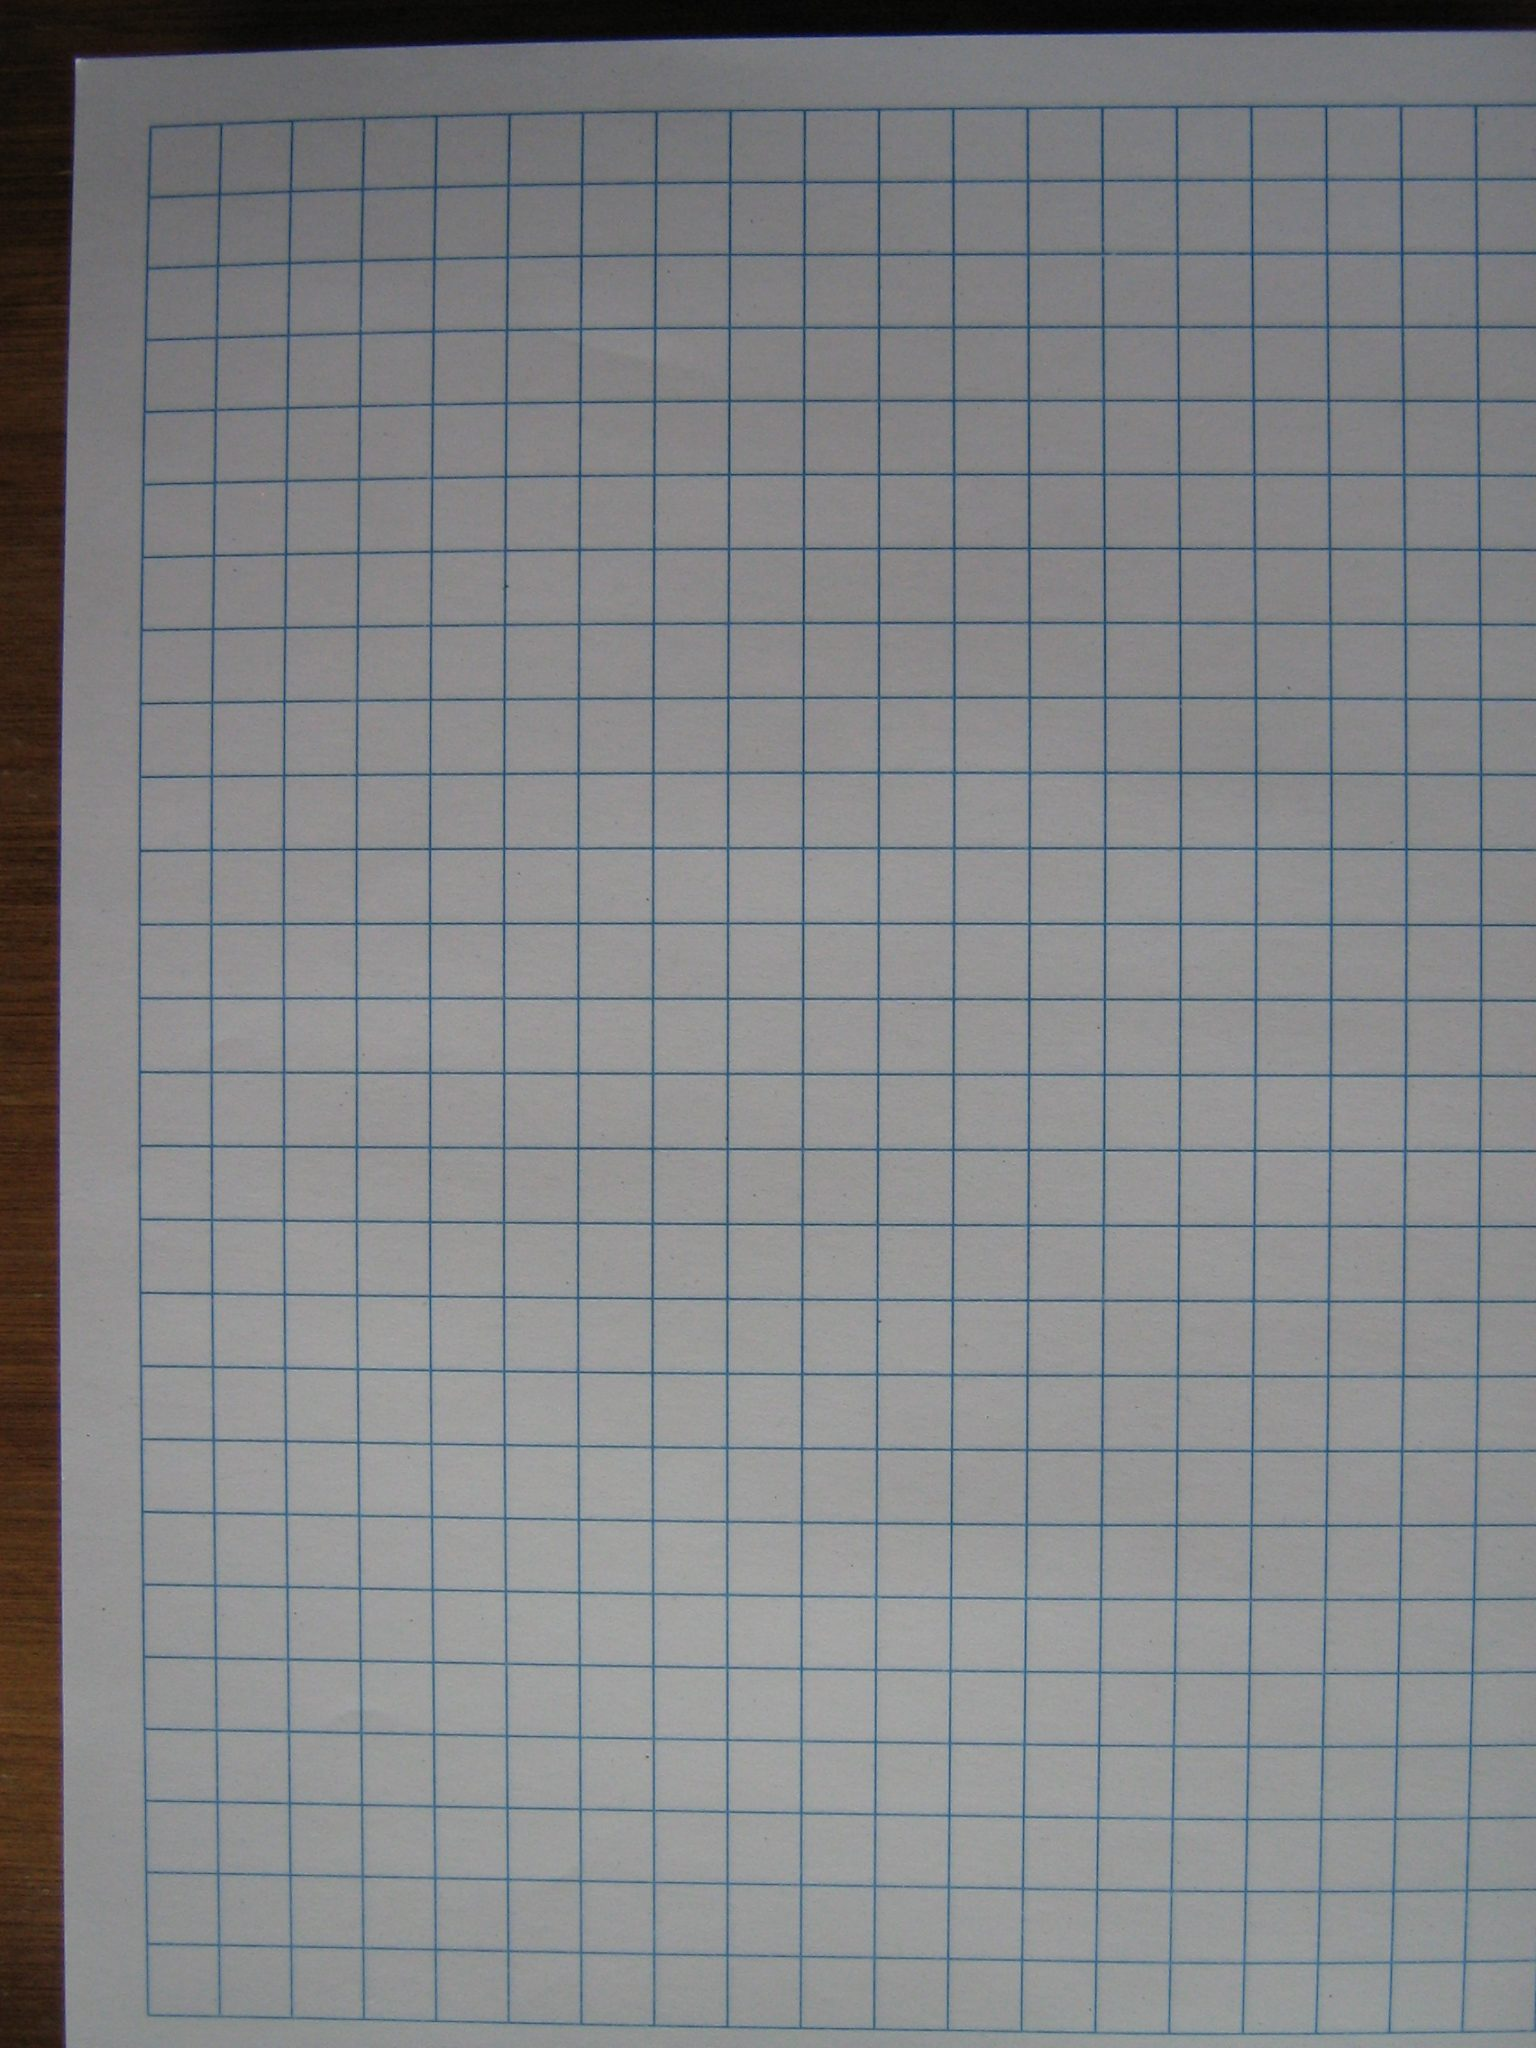 Graph Paper 8 5 X 11 | Search Results | Calendar 2015